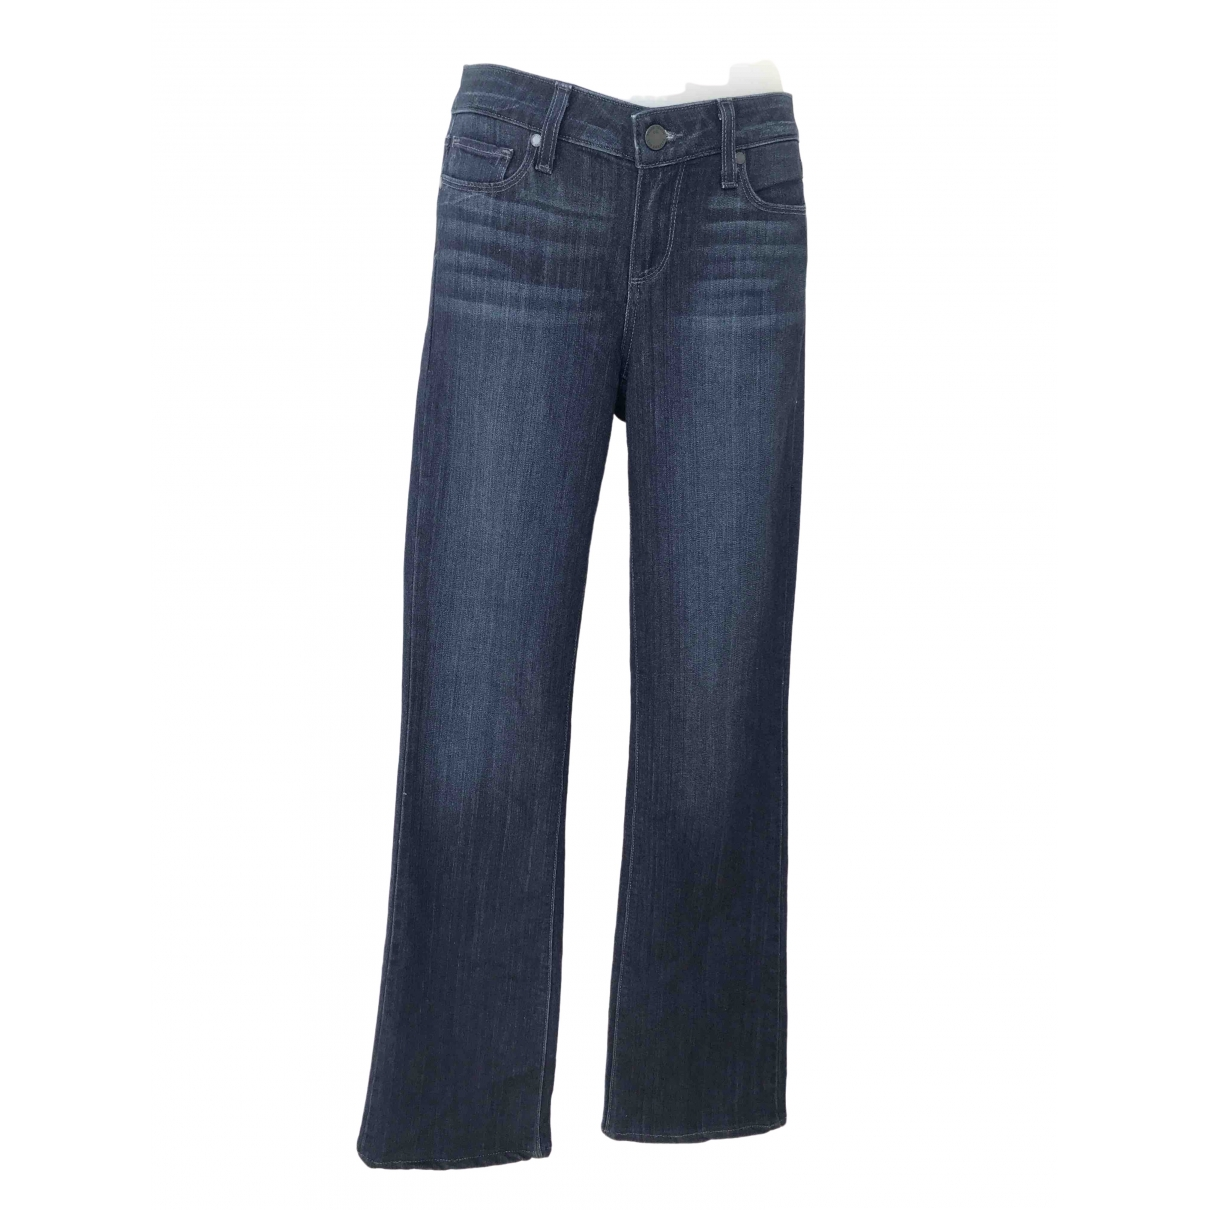 Paige Jeans \N Blue Cotton - elasthane Jeans for Women 26 US